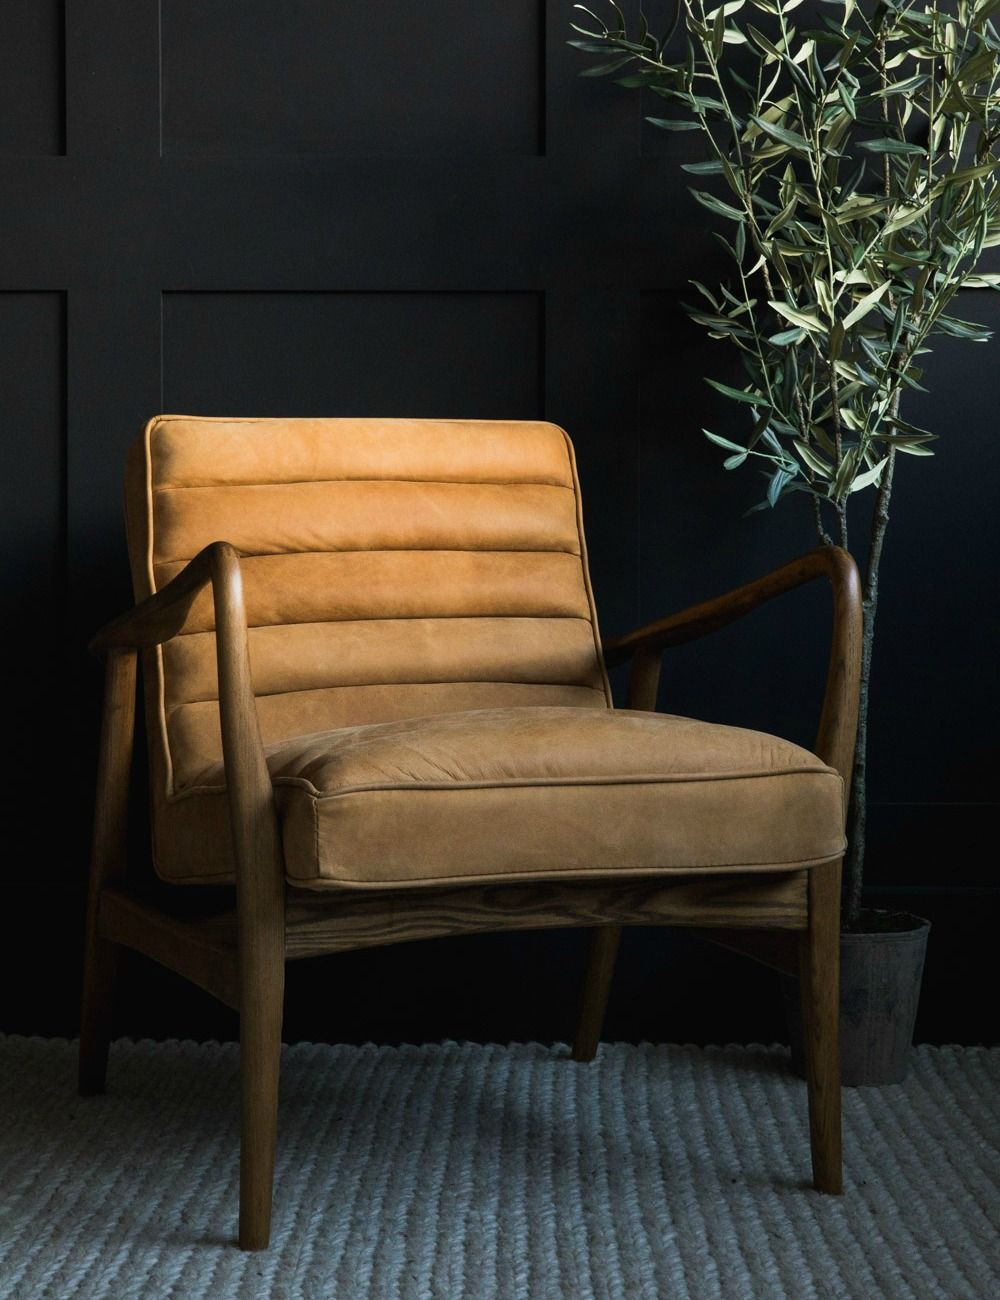 Mid Century Tan Leather Armchair At Rose Grey Buy Online Now From Rose Grey Eclectic H Mid Century Leather Armchair Best Leather Sofa Vintage Style Sofas